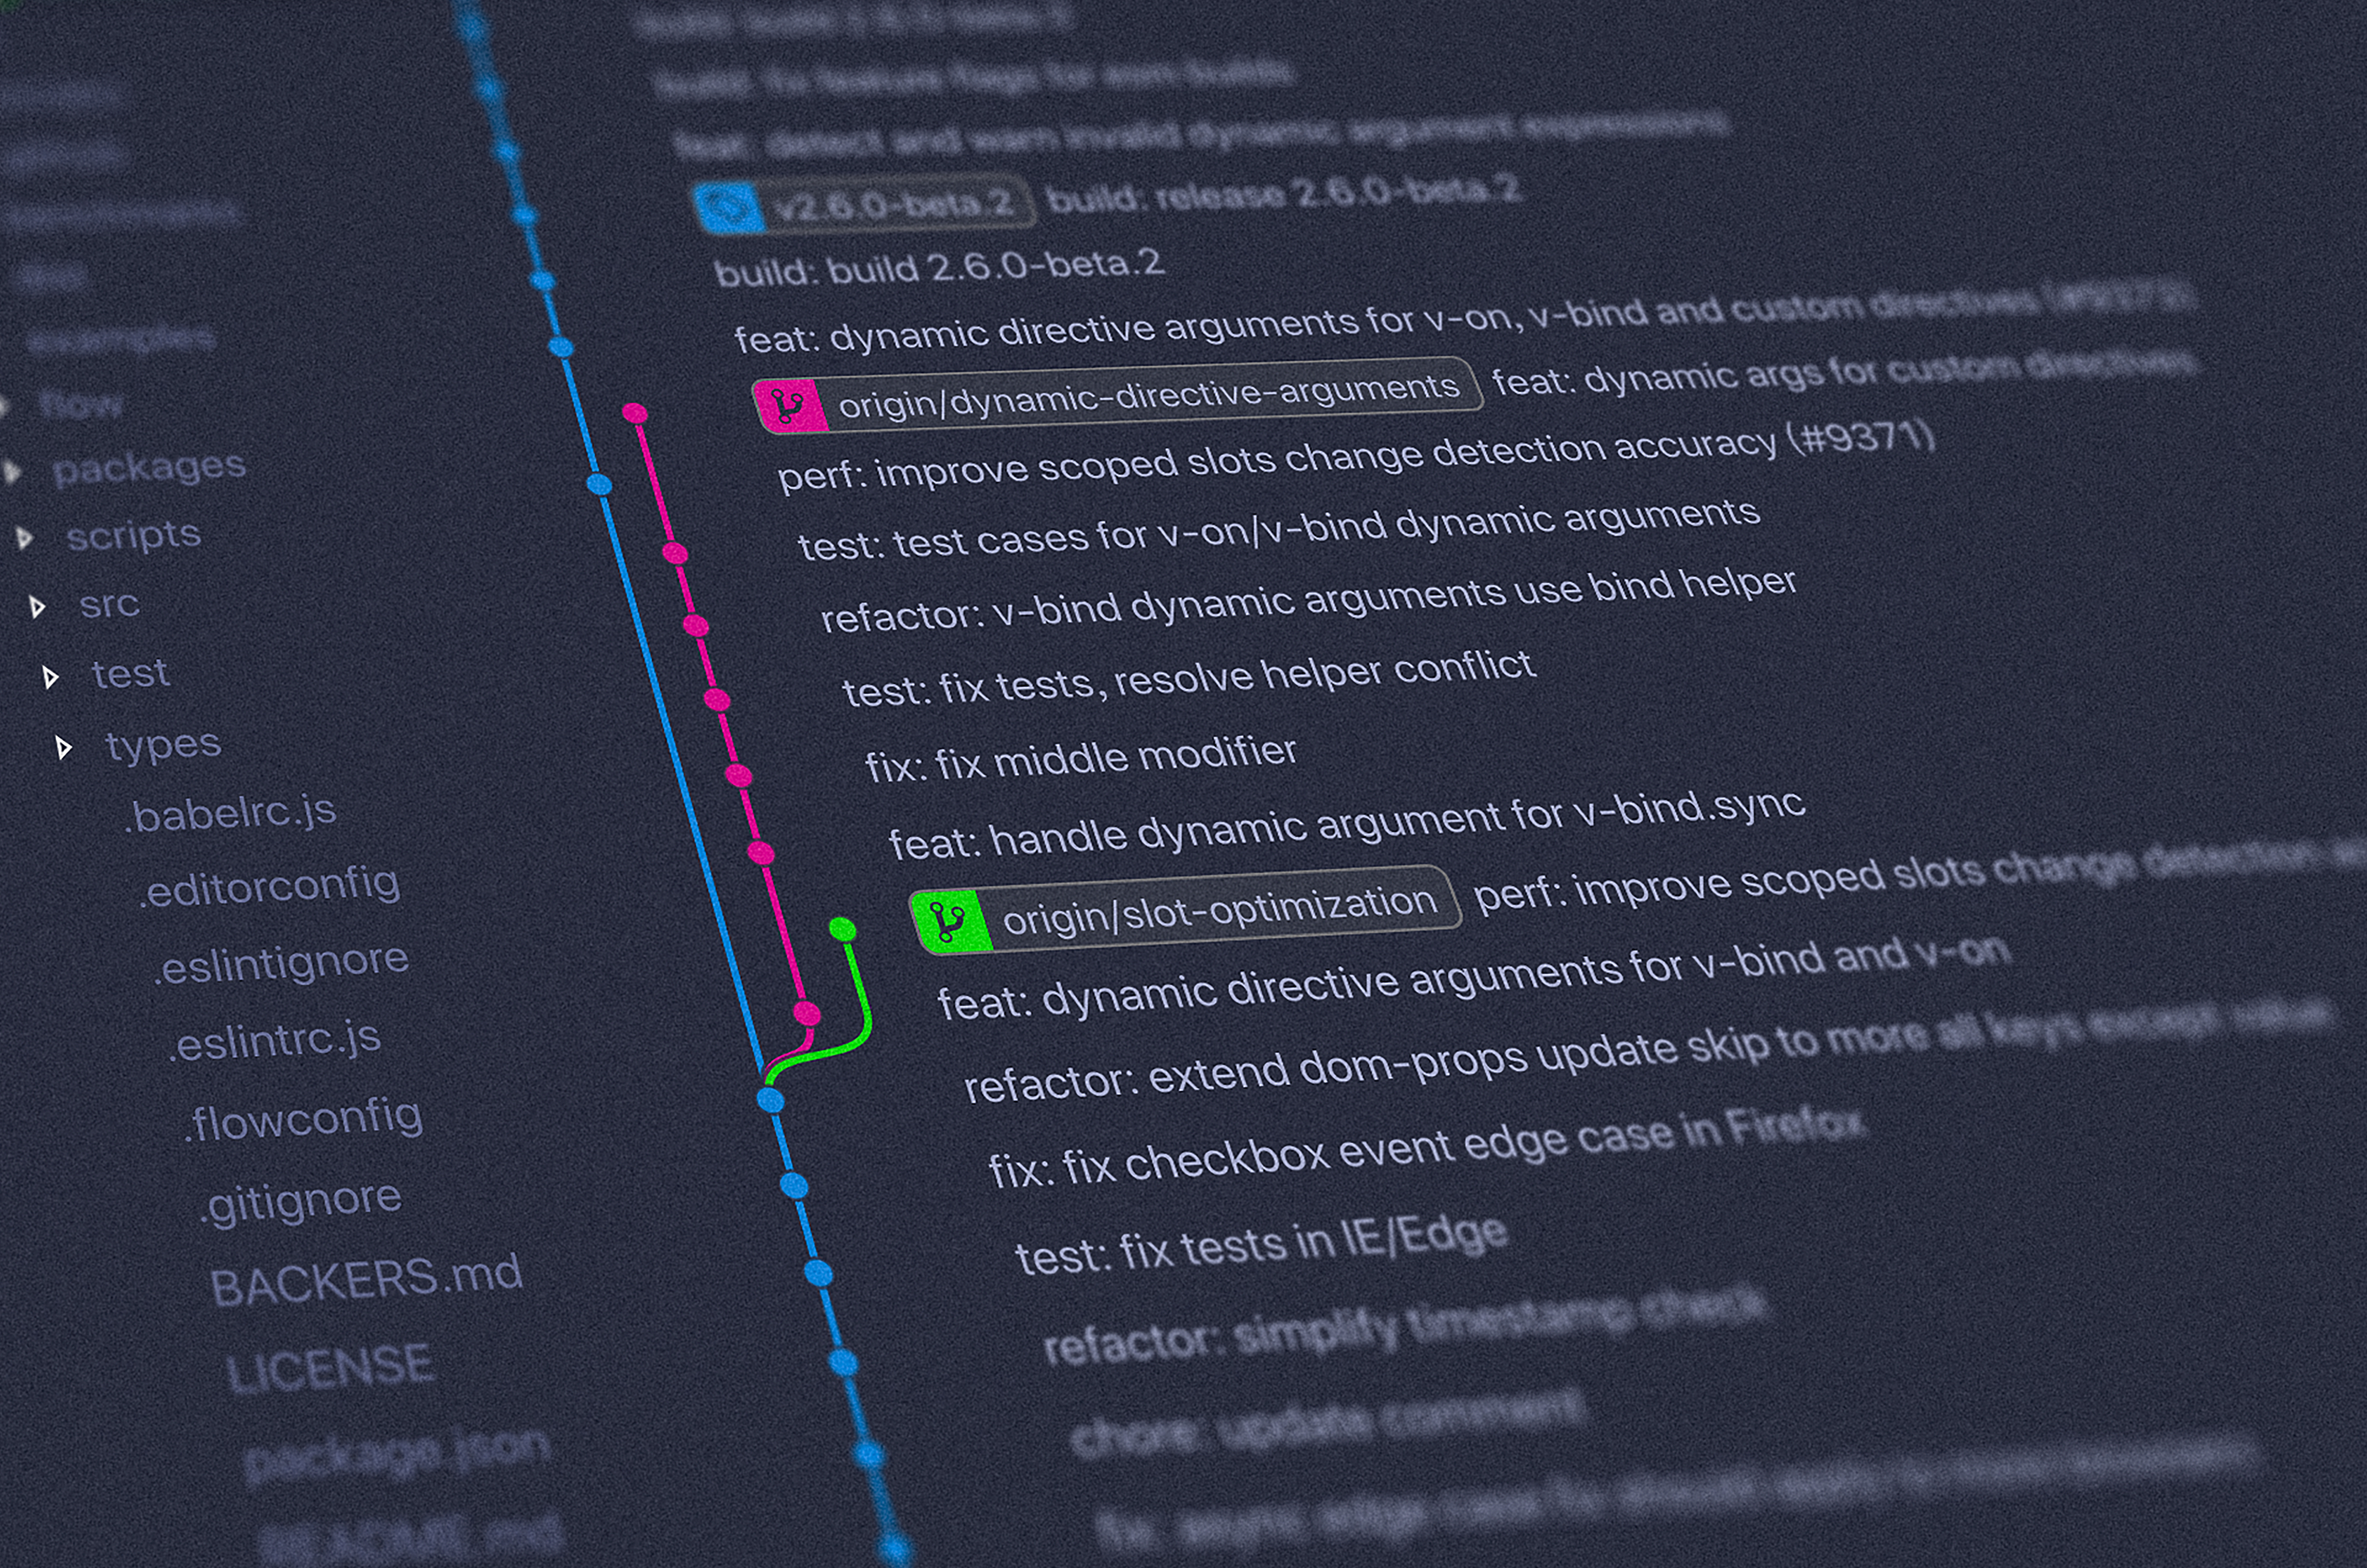 The Ultimate Git Command Tutorial for Beginners - Everything You Need to Know